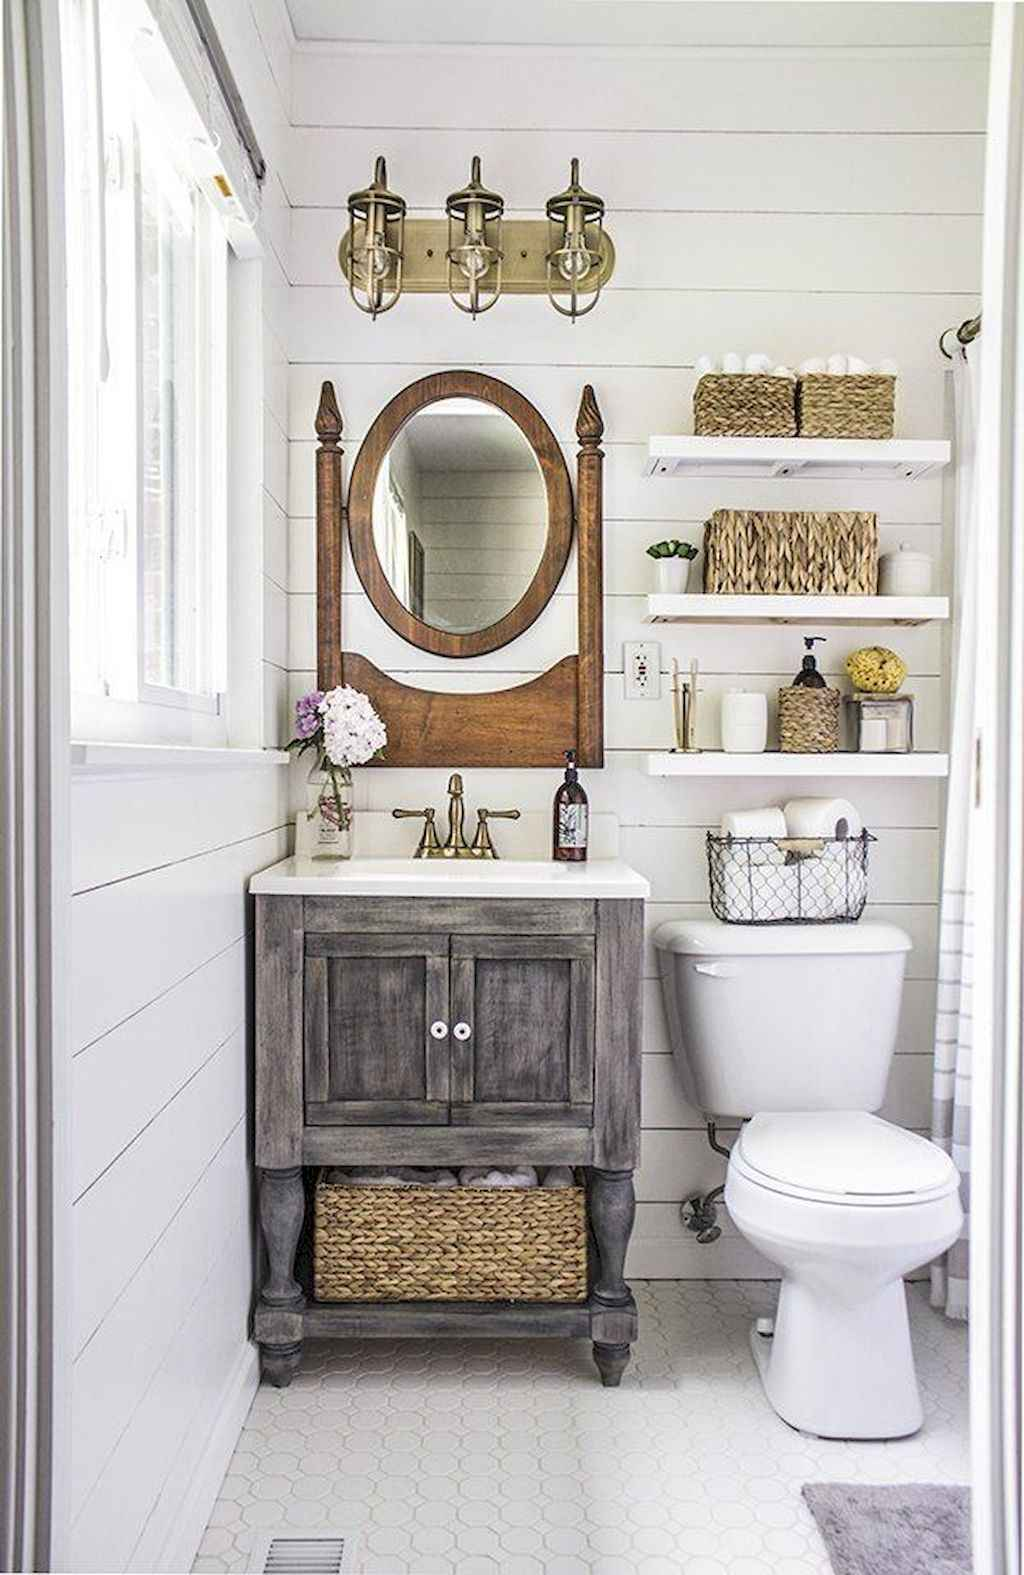 50 Rustic Farmhouse Master Bathroom Remodel Ideas - Roomadness.com